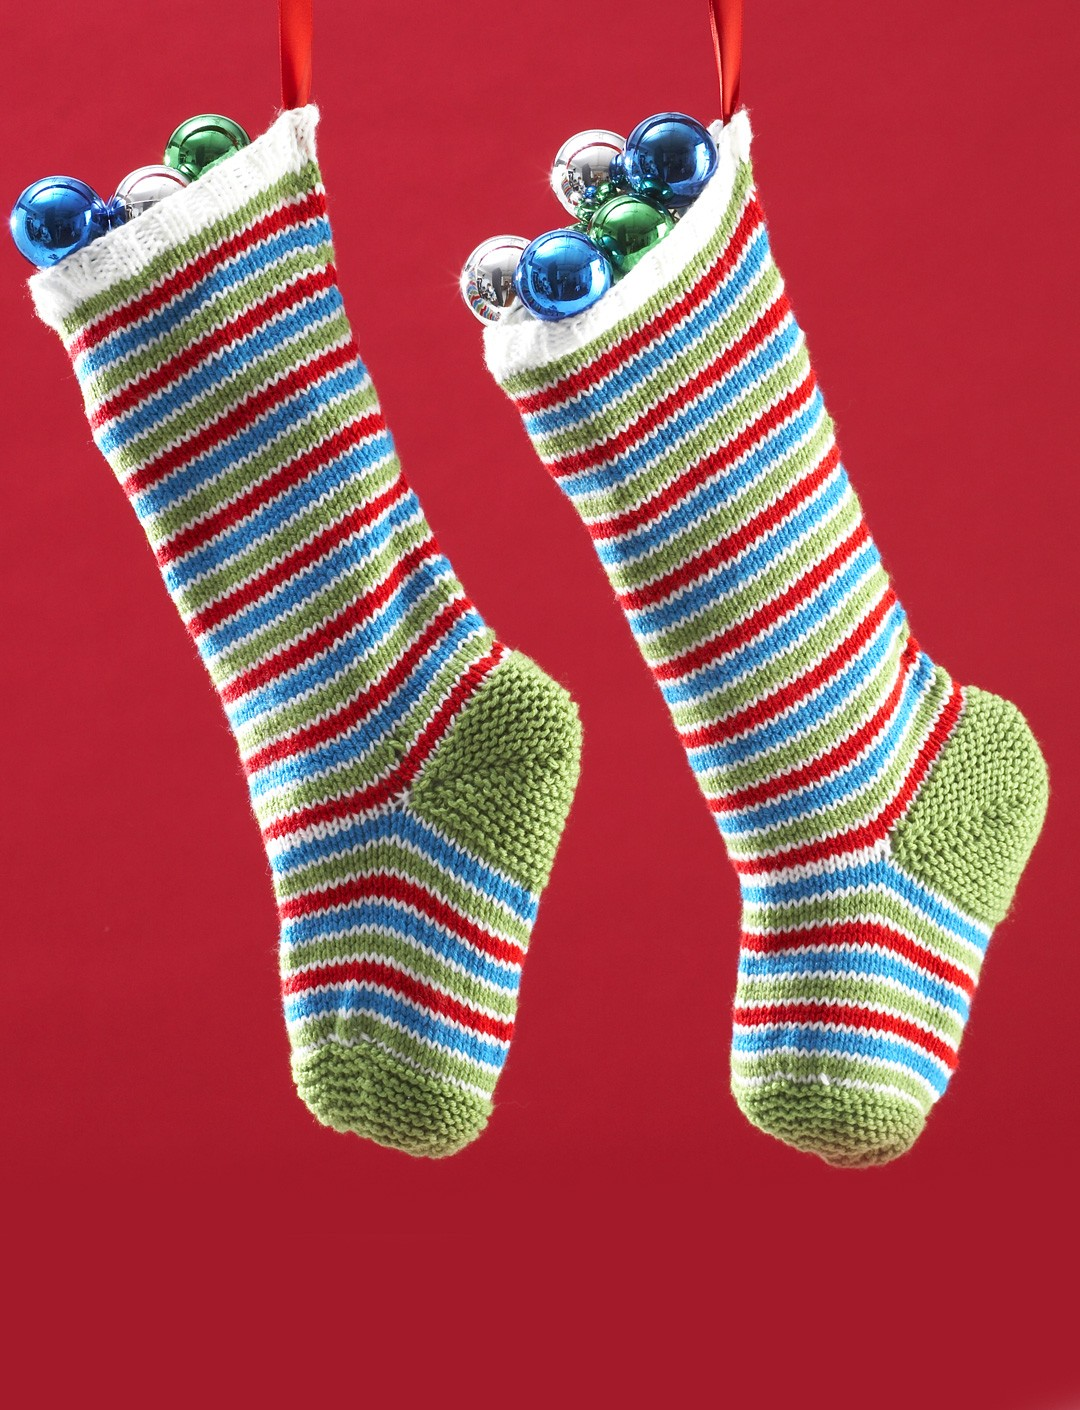 Jolly Striped Stockings